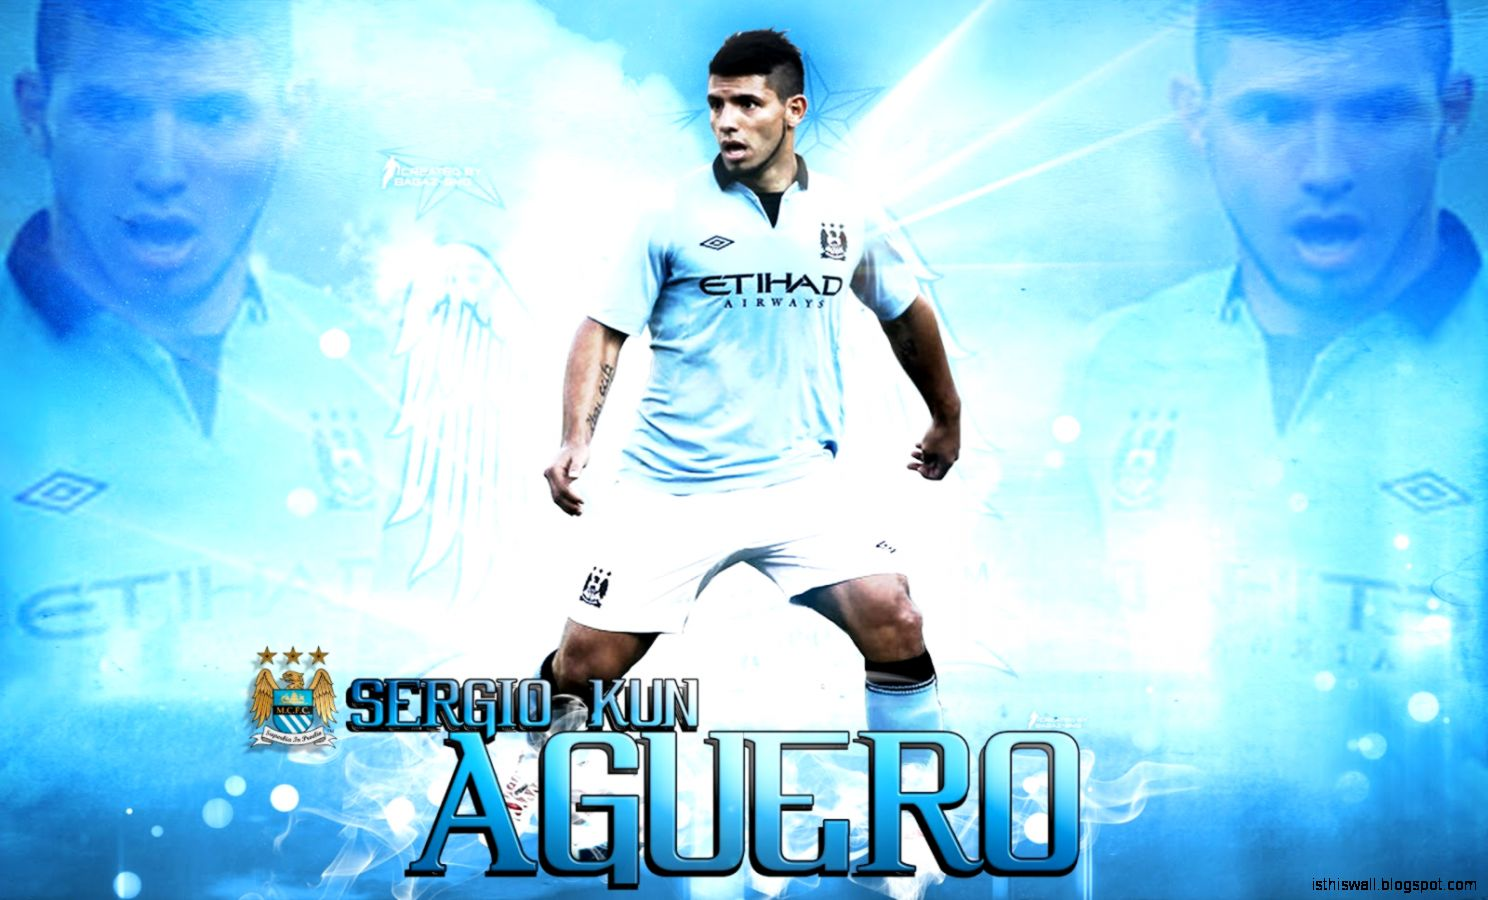 sergio aguero manchester city wallpaper this wallpapers